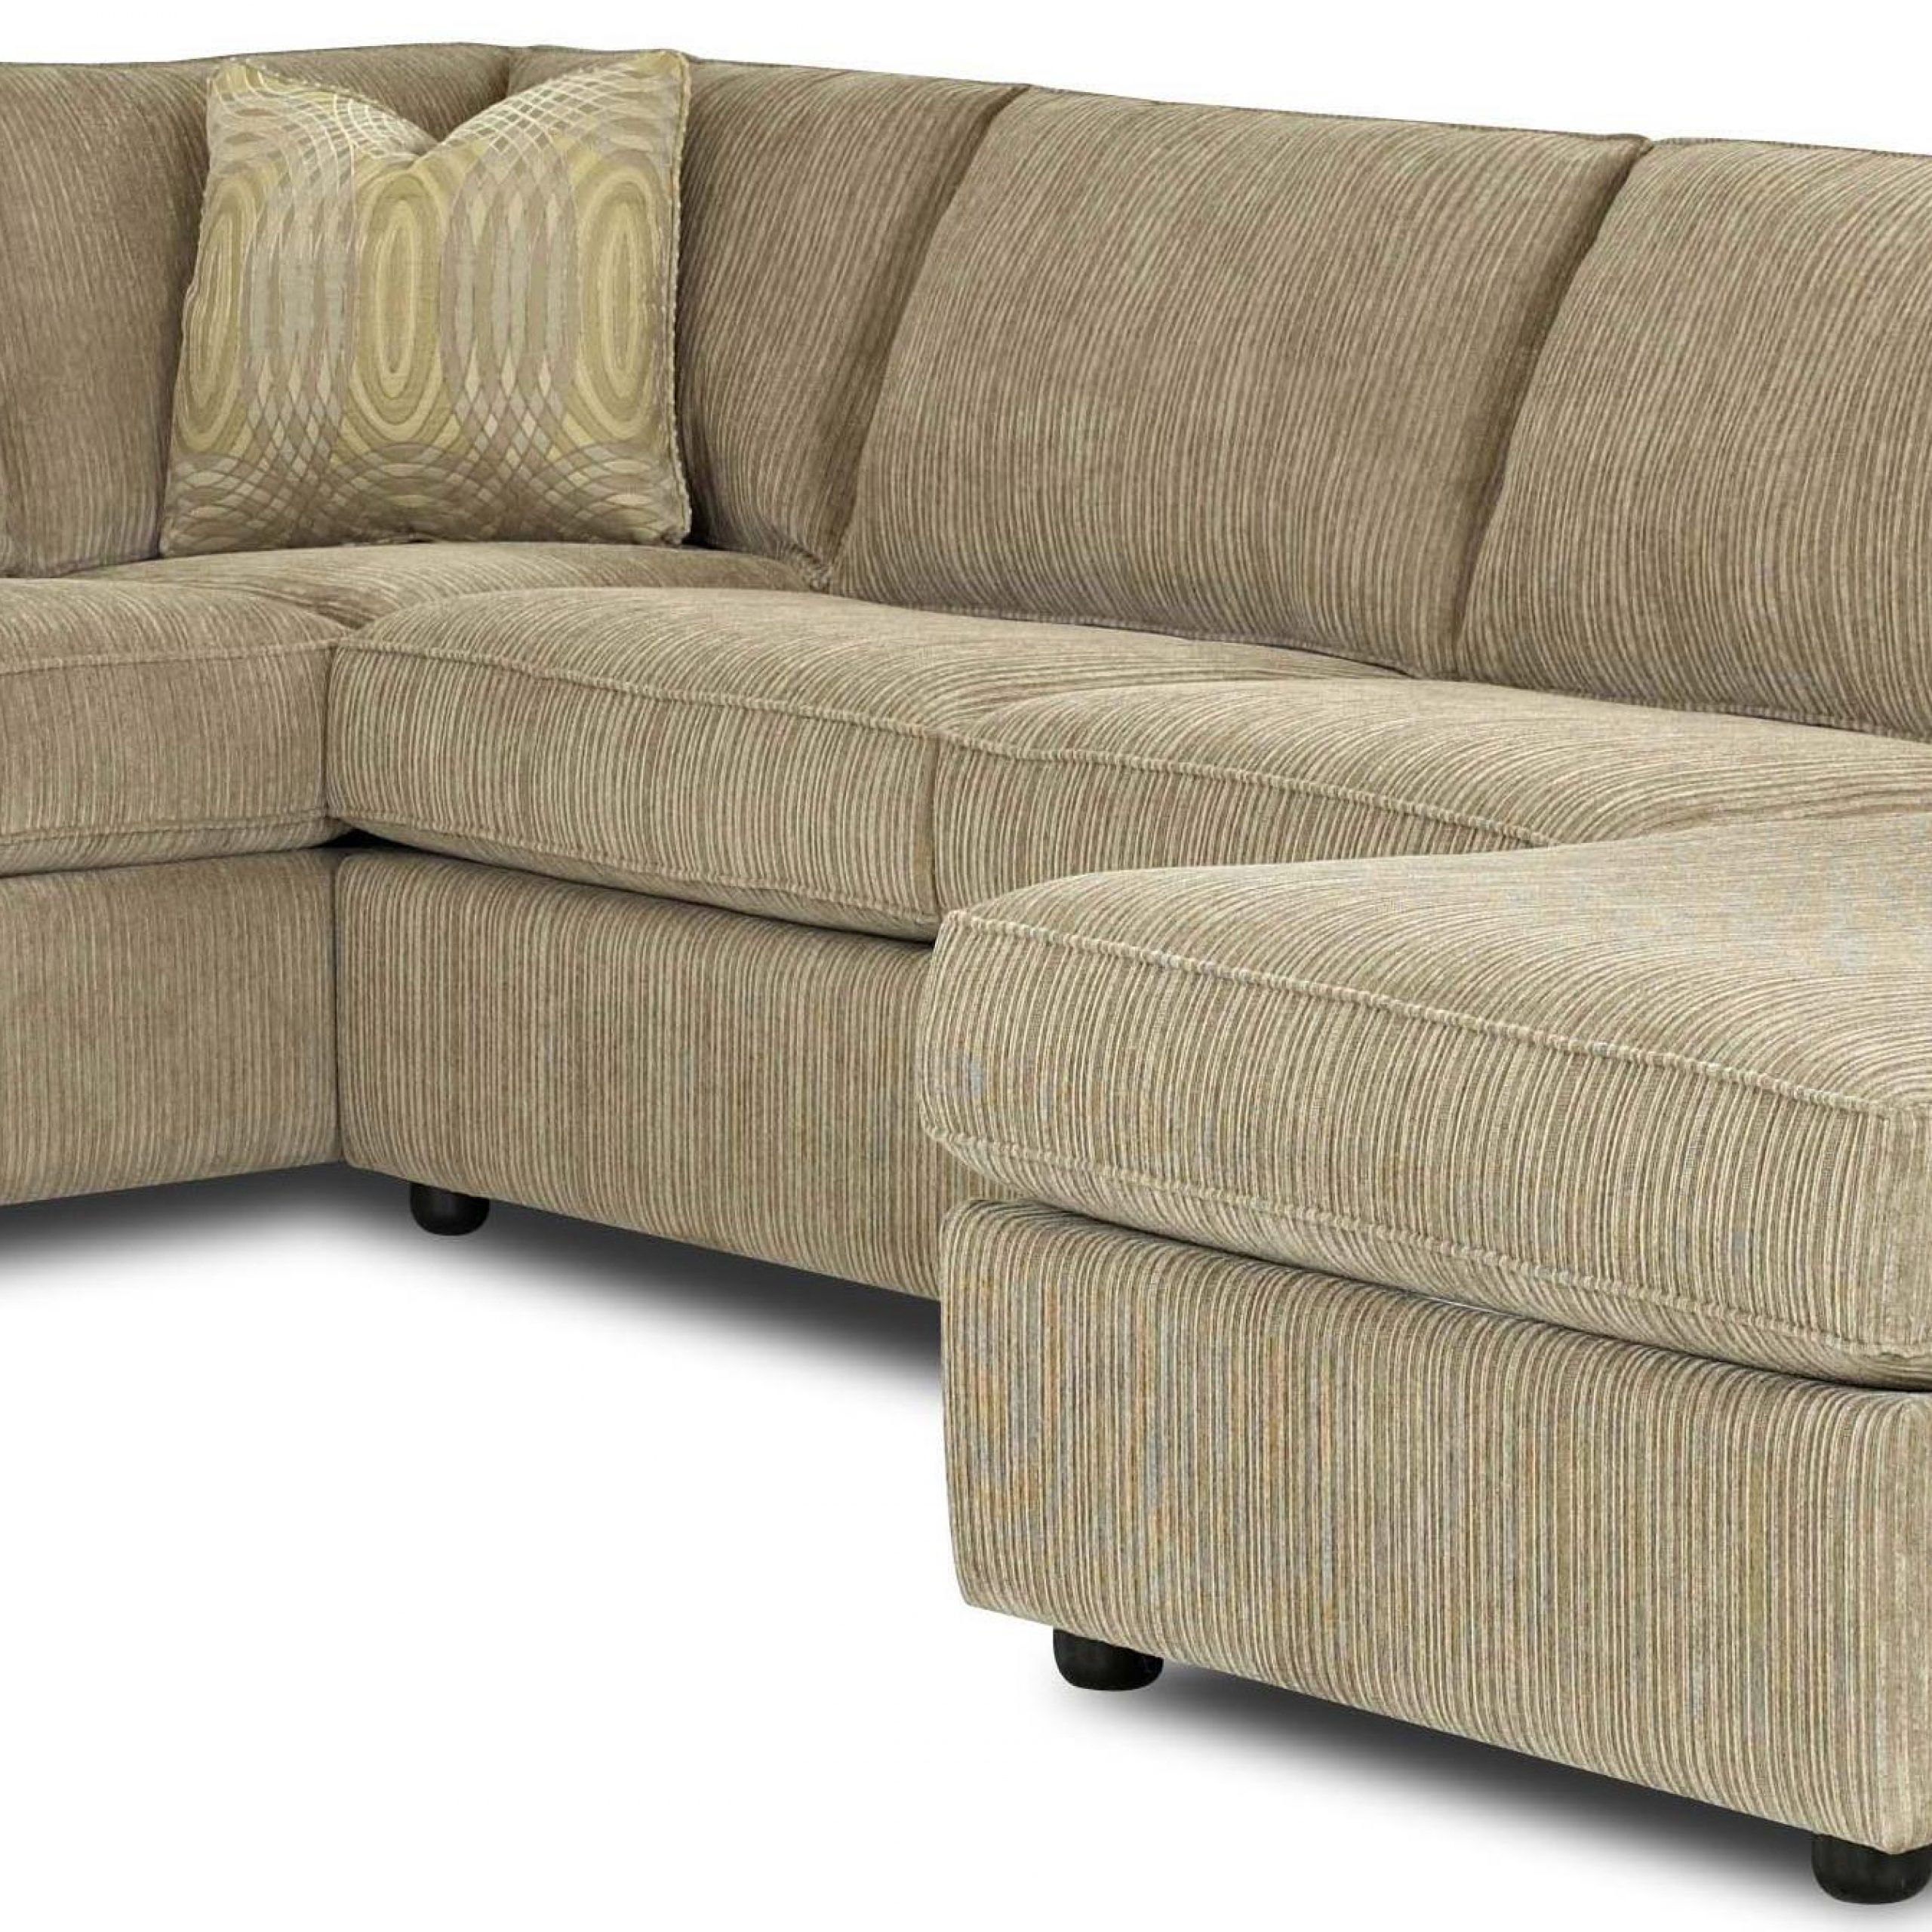 Transitional Sectional Sofa With Rolled Arms And Left With Regard To Most Recently Released Copenhagen Reclining Sectional Sofas With Left Storage Chaise (View 20 of 20)